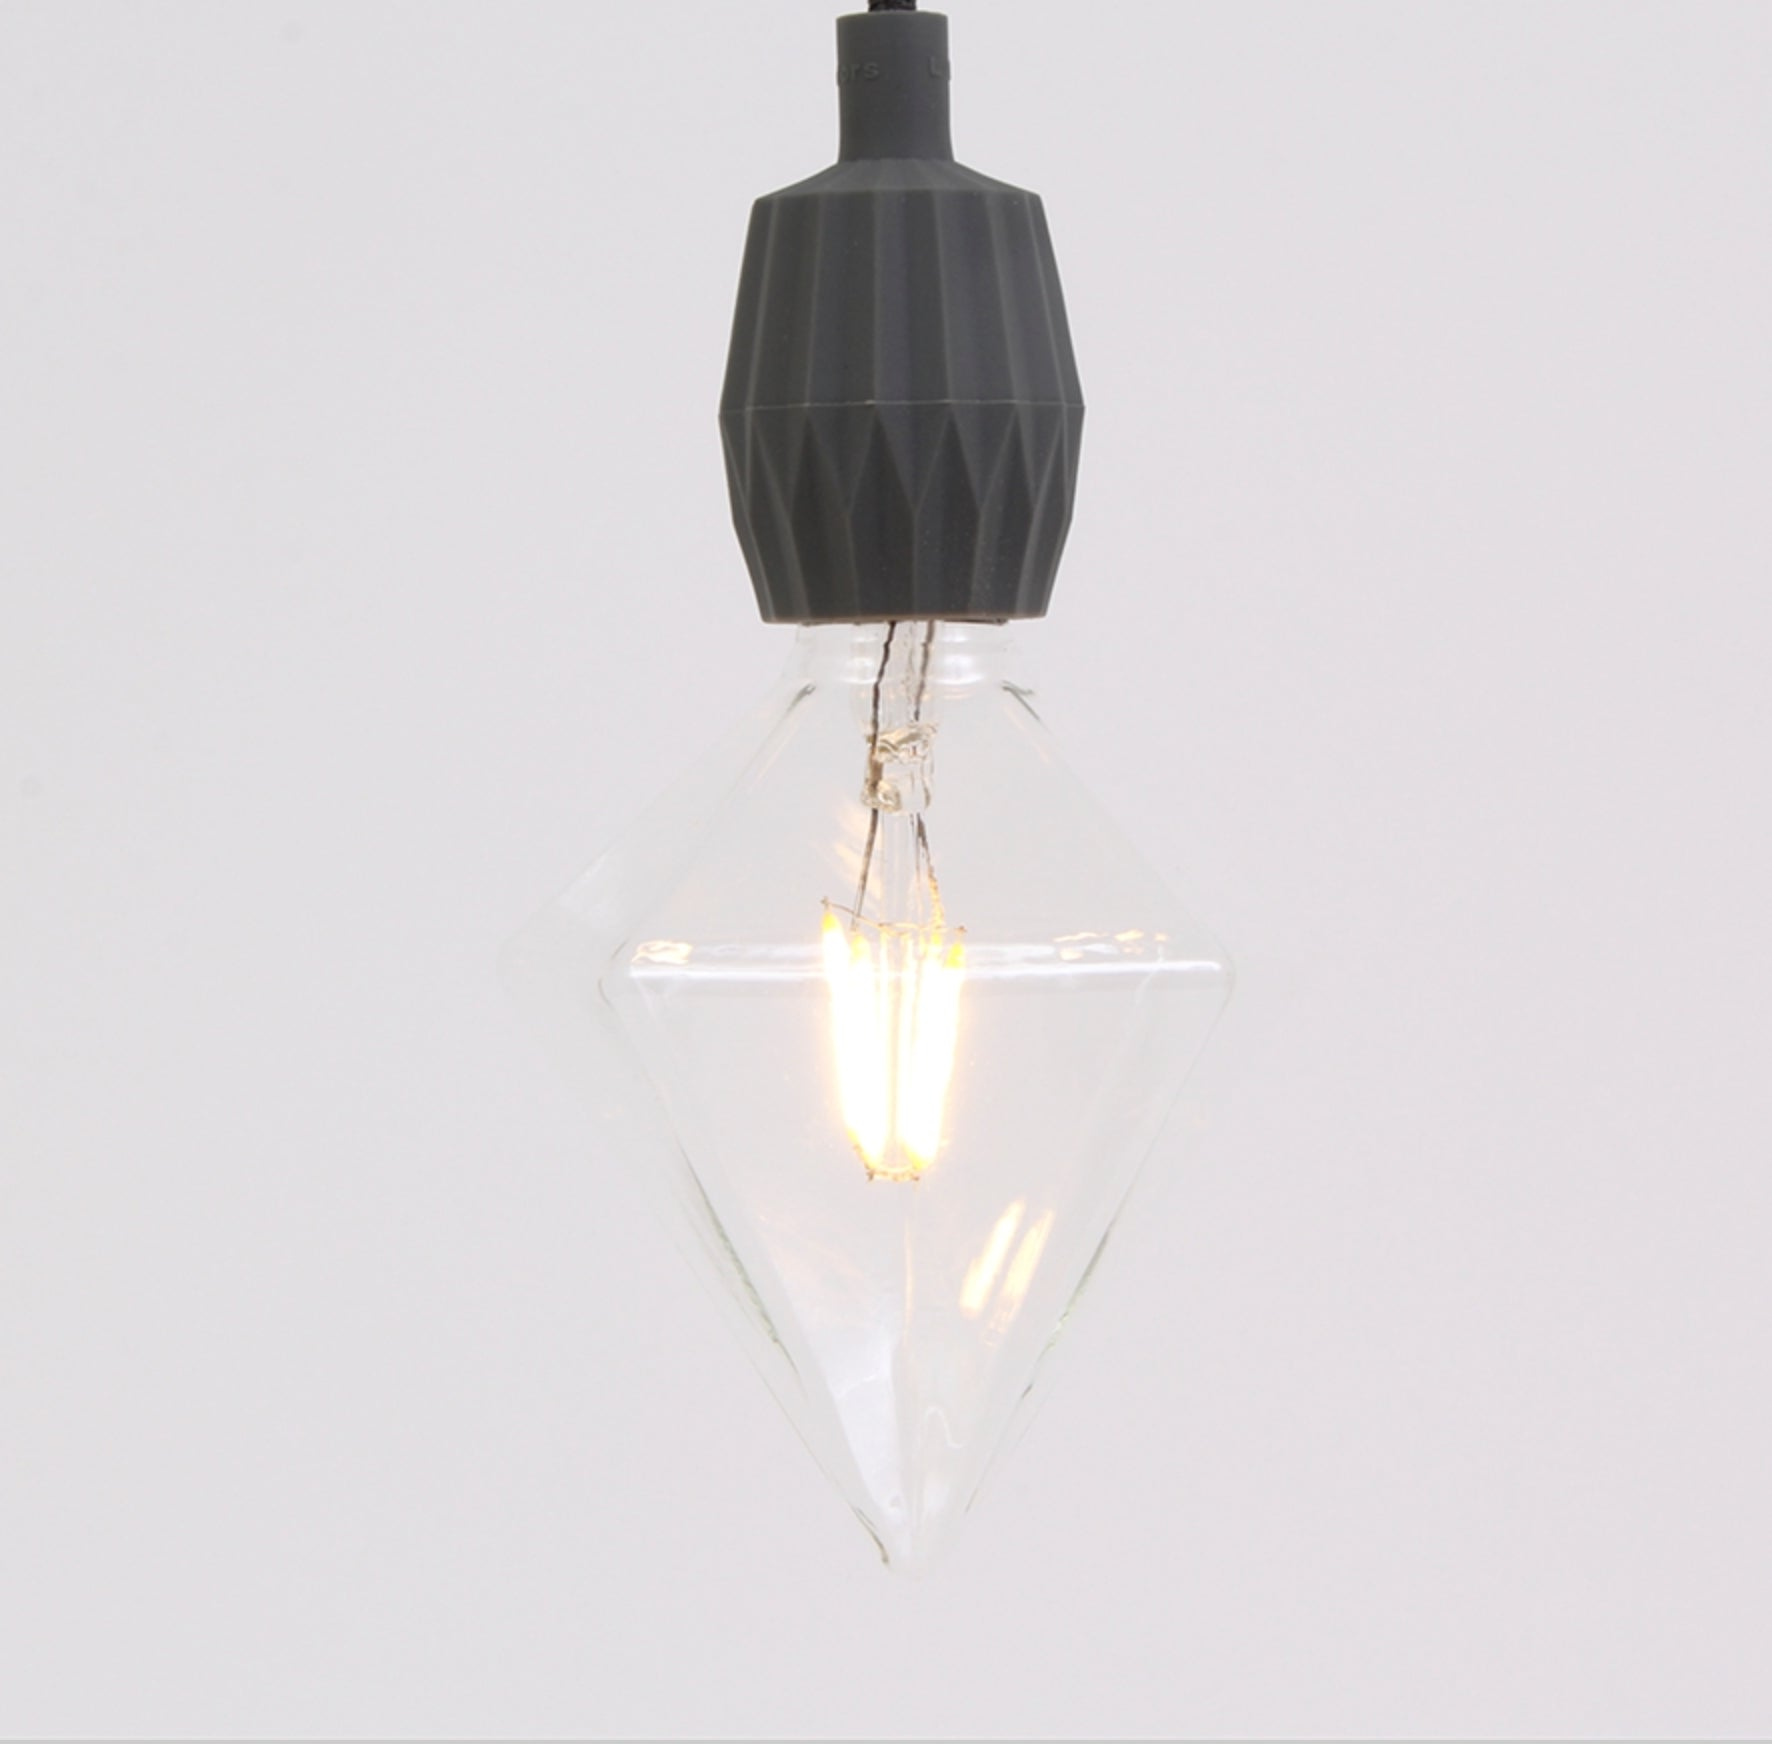 Decorative Diamond Lightbulb